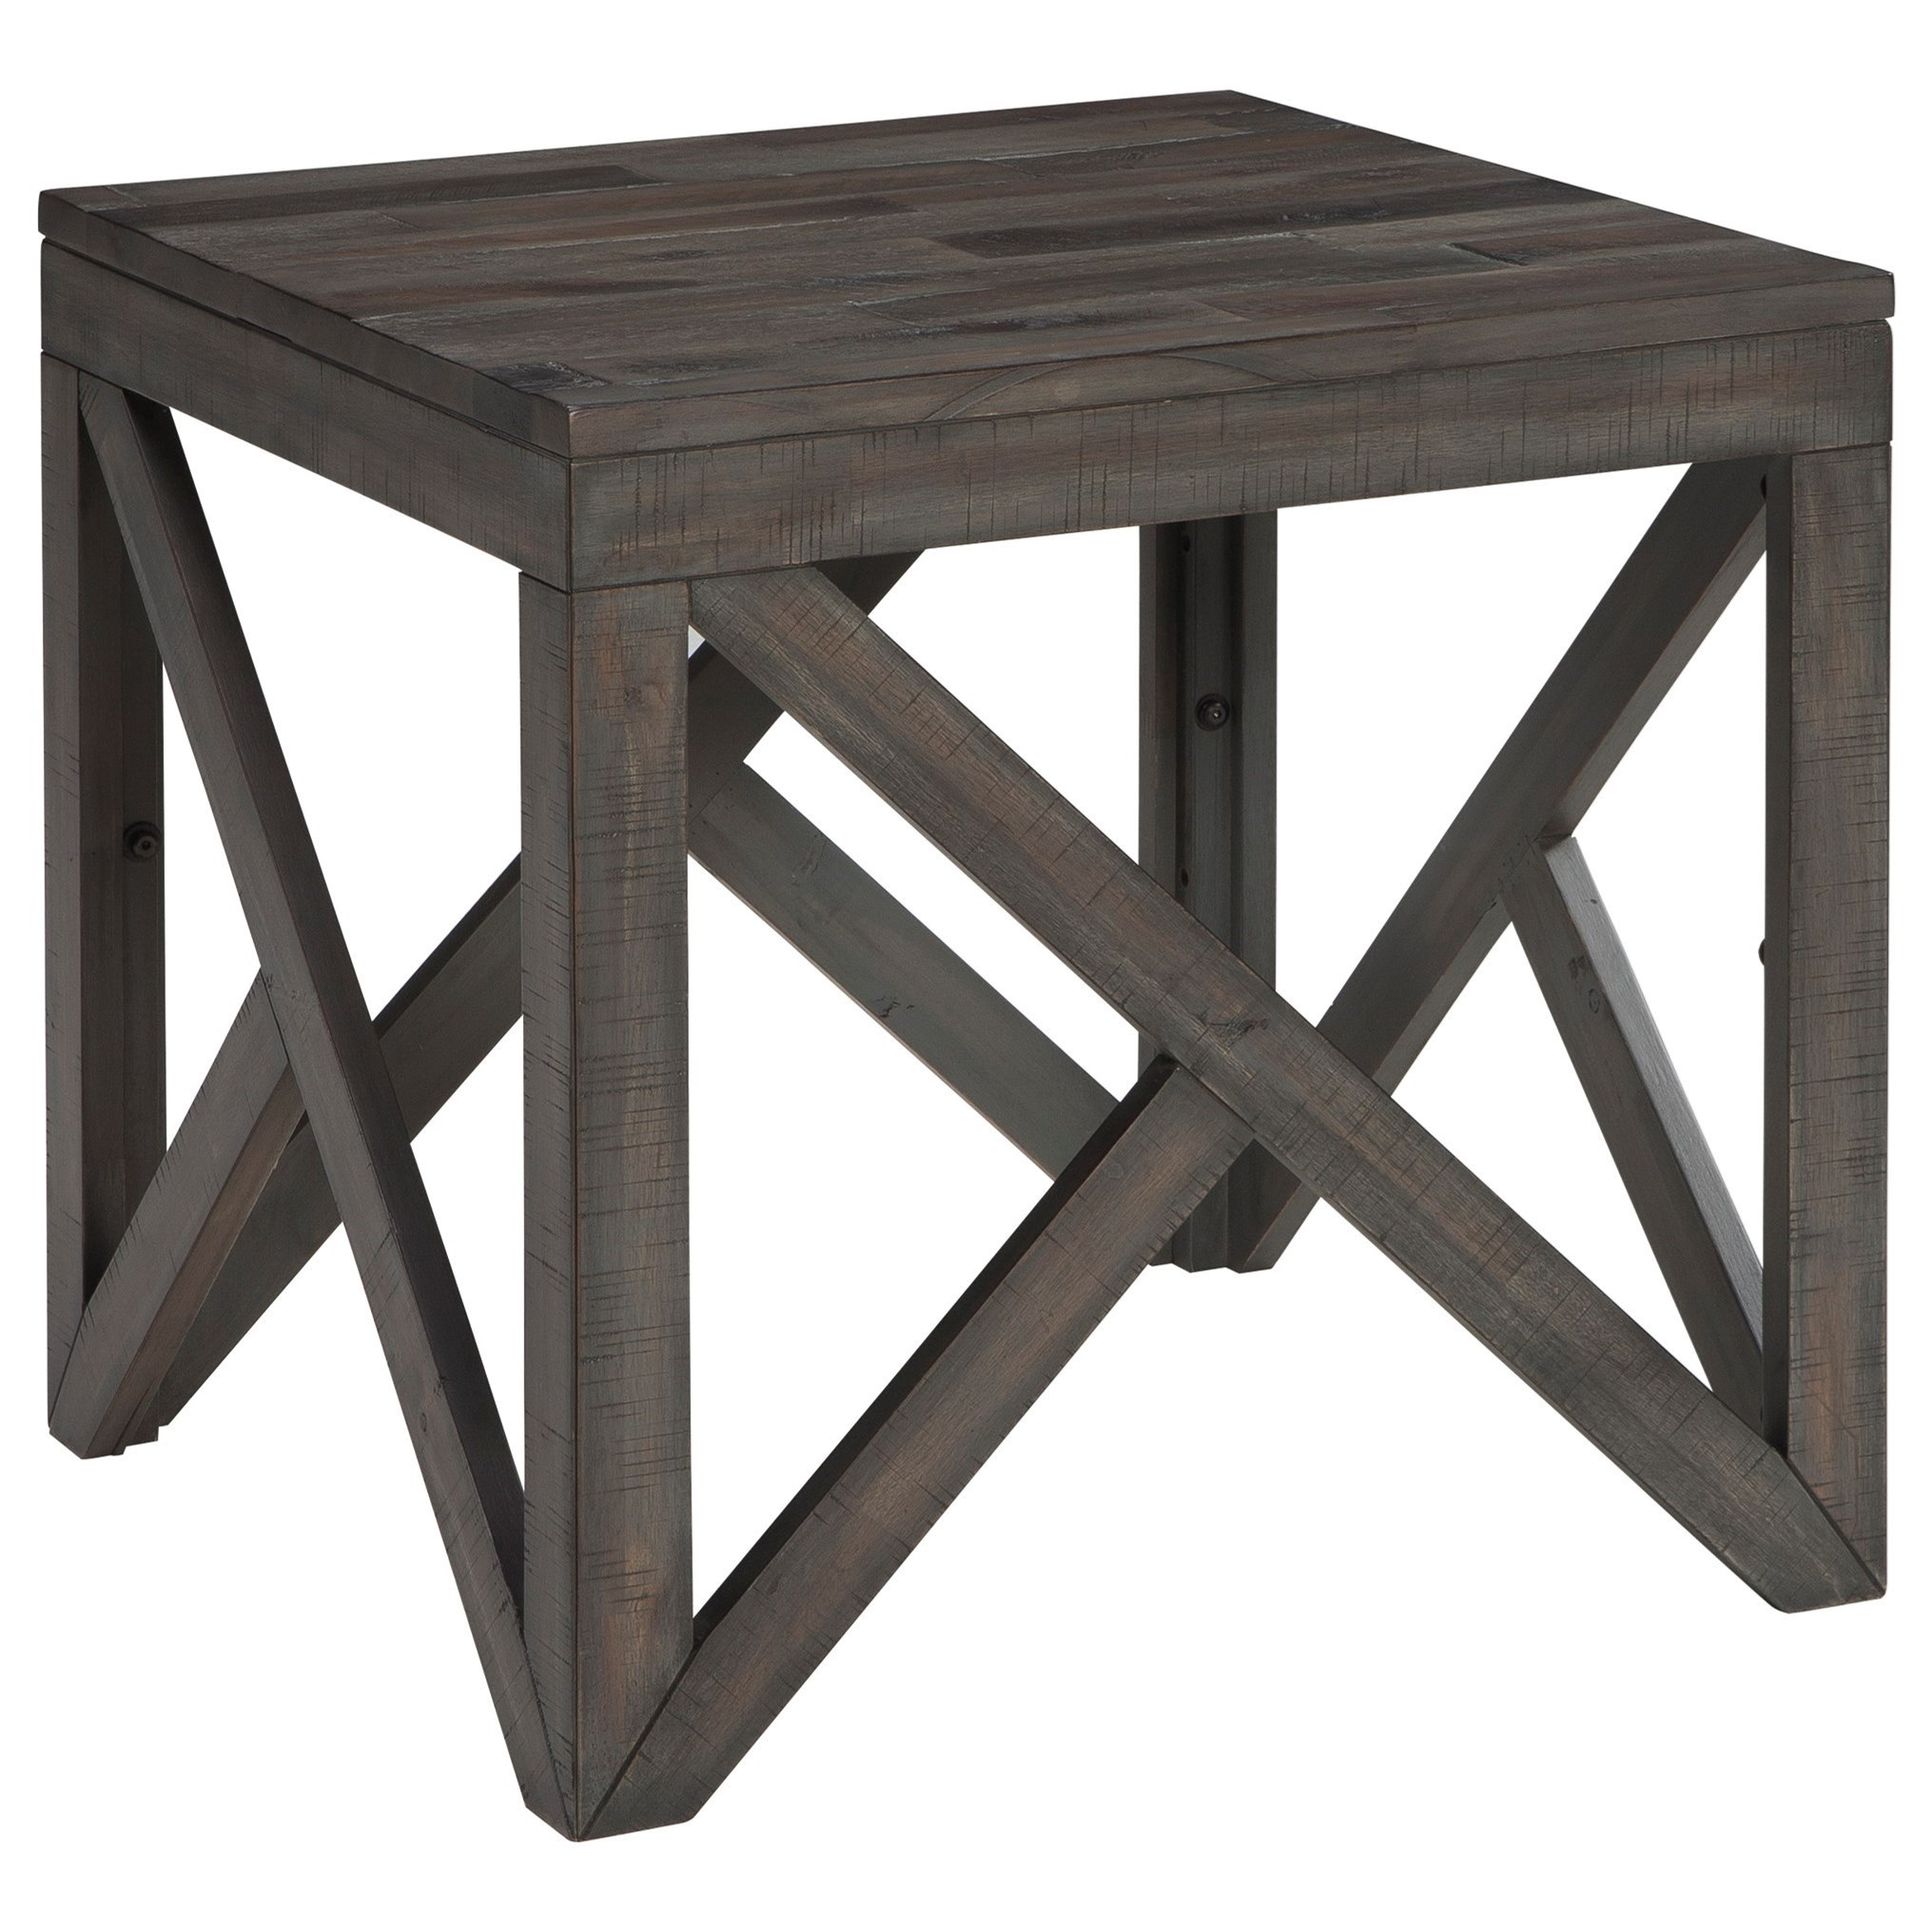 Haroflyn Square End Table by Signature Design by Ashley at Northeast Factory Direct